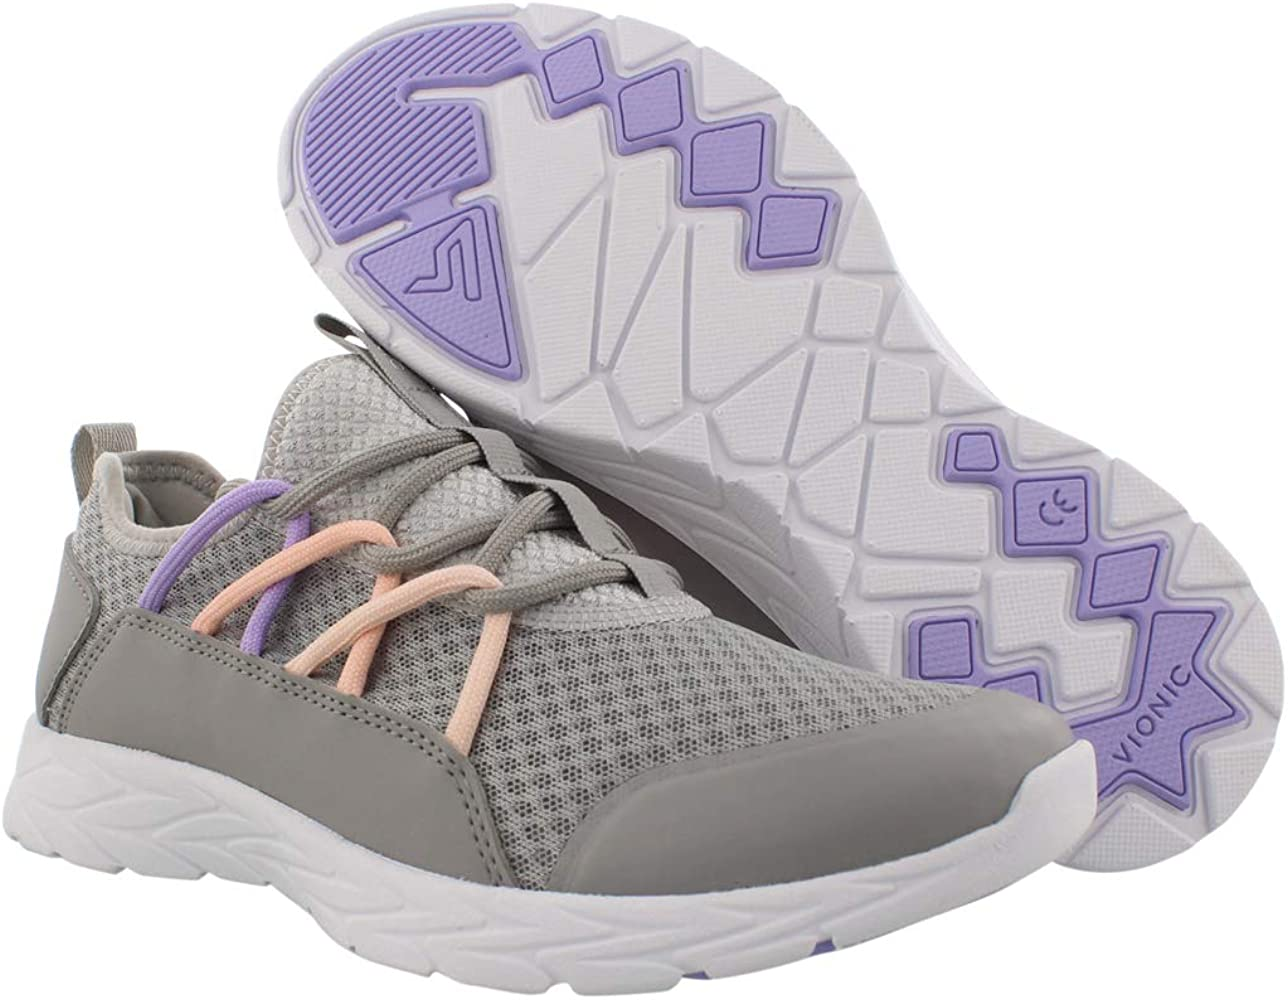 Vionic Sky Jessica Womens Velcro Trainer Supportive Walking Shoes That Includes Three-Zone Comfort for Heel Pain and Plantar Fasciitis with Orthotic Insole Arch Support Wide Fit